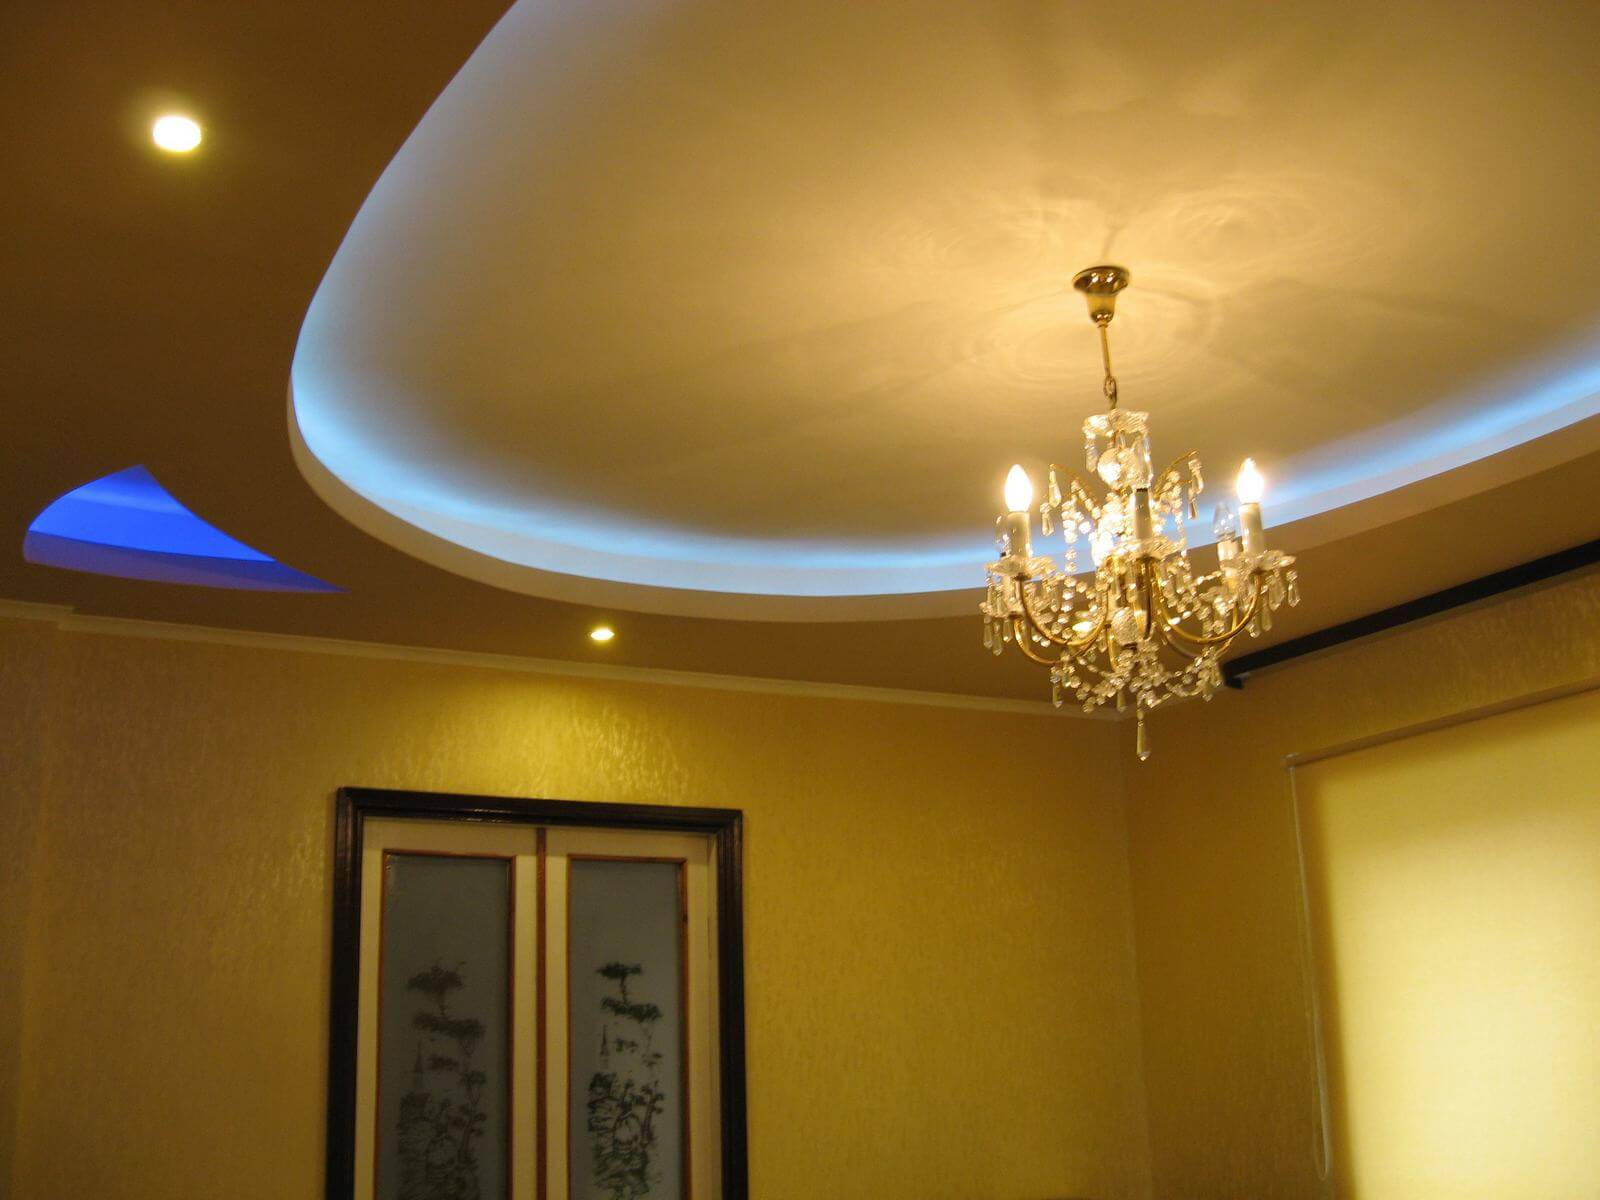 Plasterboard Ceiling Finishing Design Ideas for Apartment in Classic style with golden shades